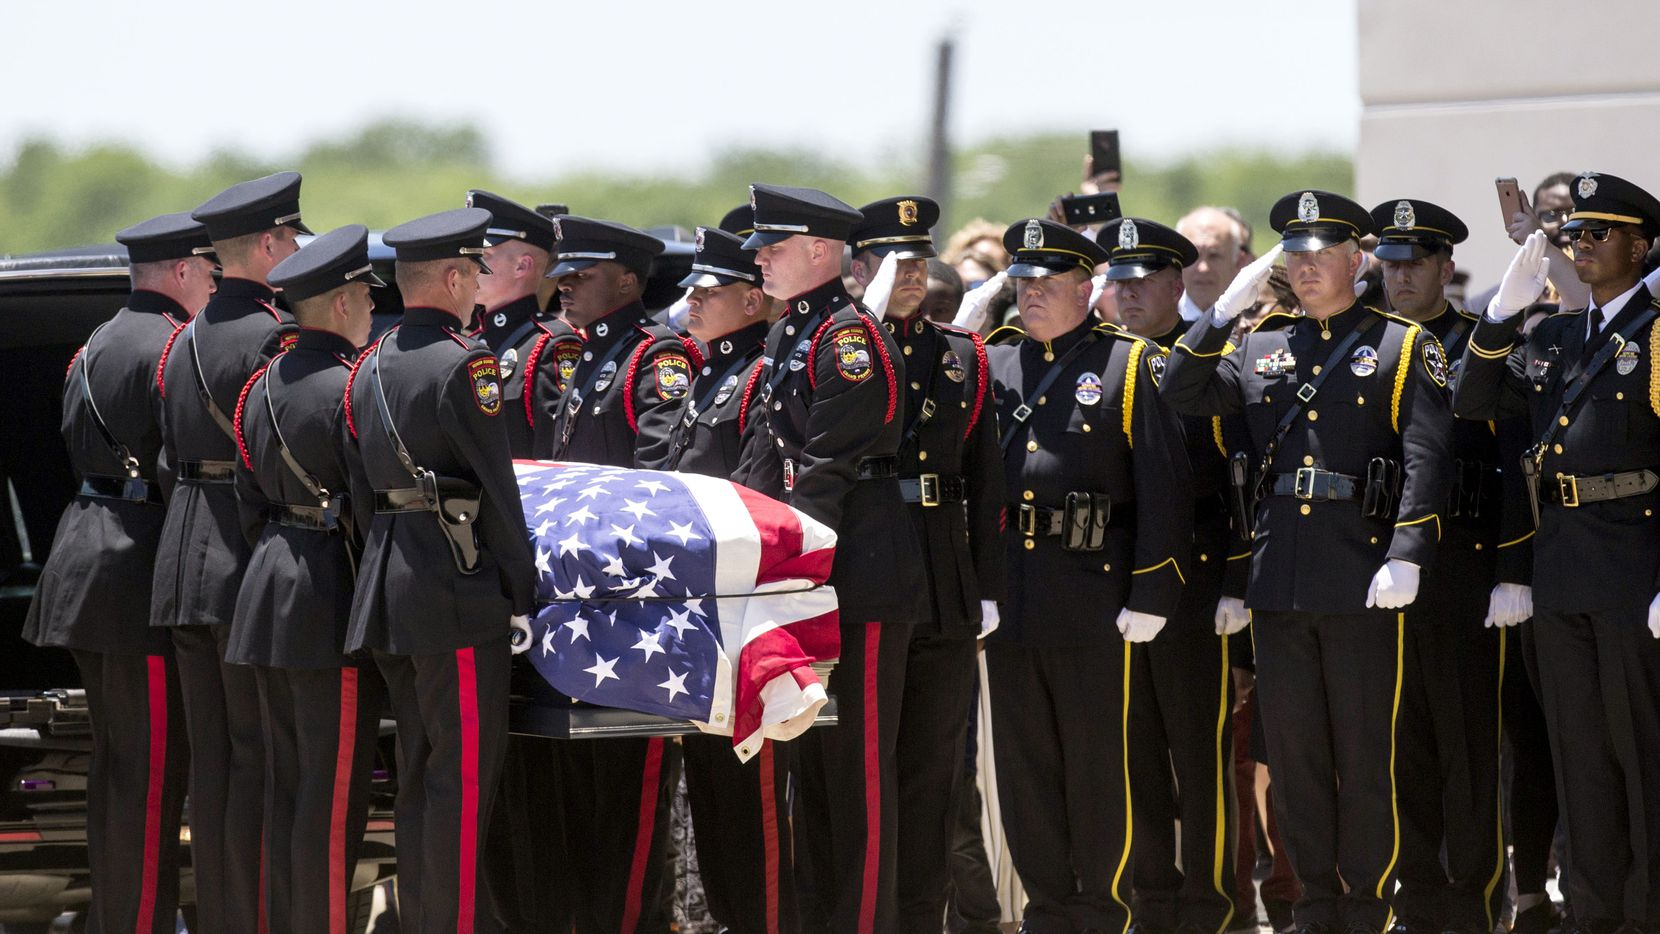 Honor guard members carried the casket of Grand Prairie officer A.J. Castaneda during funeral services at the Potter's House on Thursday, June 13, 2019, in Dallas. Castaneda was killed June 7 while on the George Bush Turnpike.